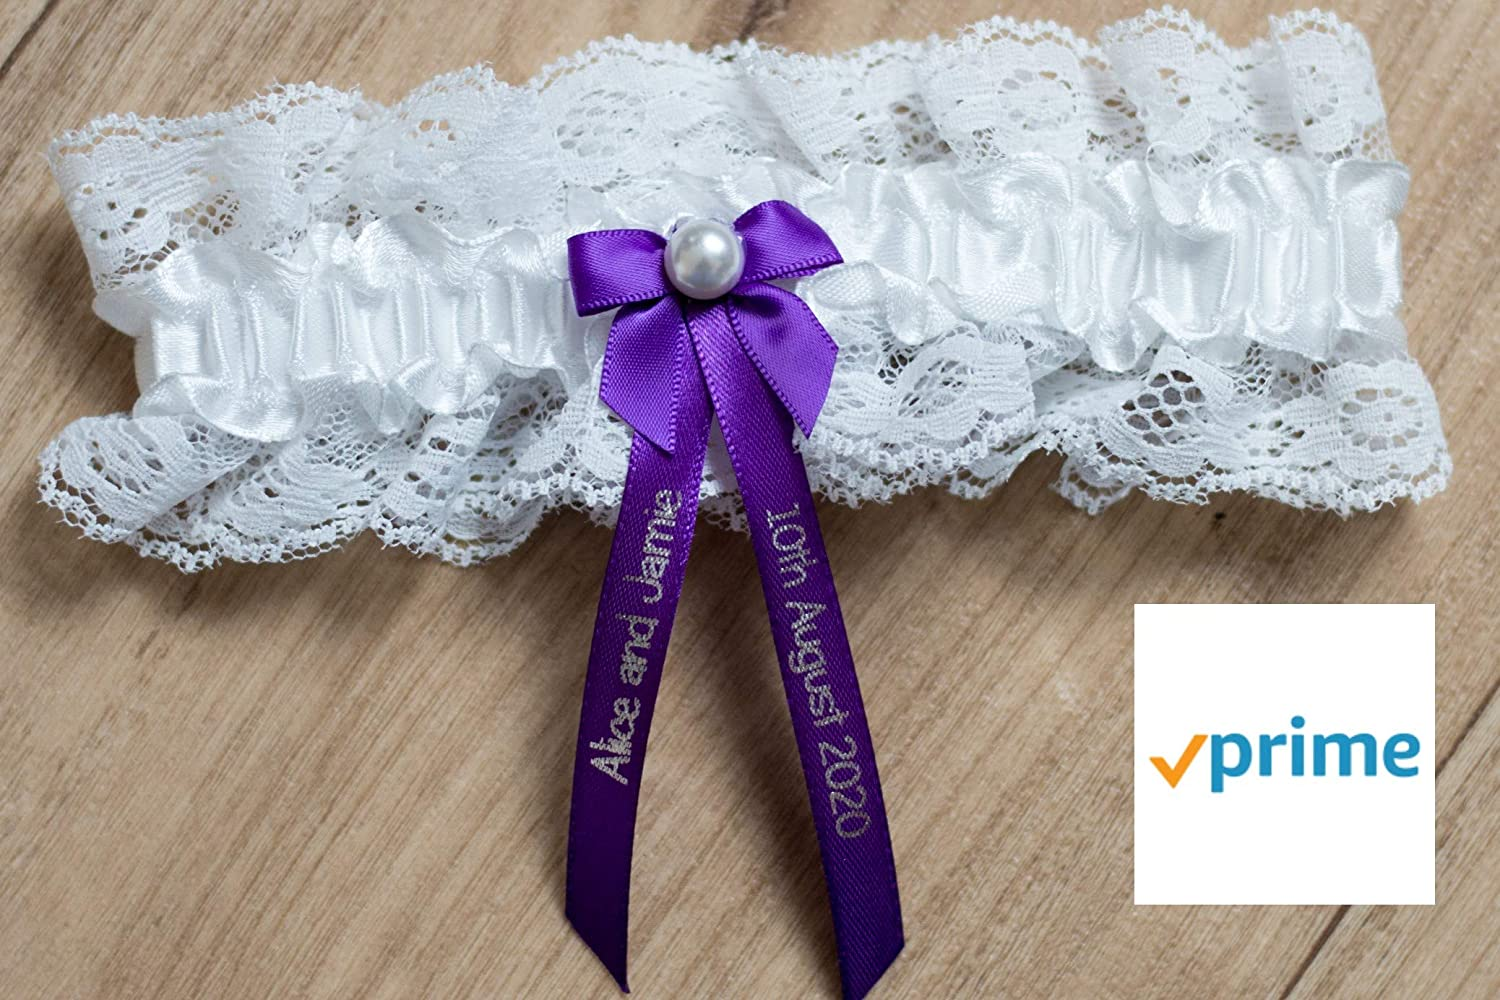 My Pretty Little Gifts Personalised Garter Perfect Hen Party or Wedding Gift Gift Boxed Ivory // Purple PRIME DELIVERY